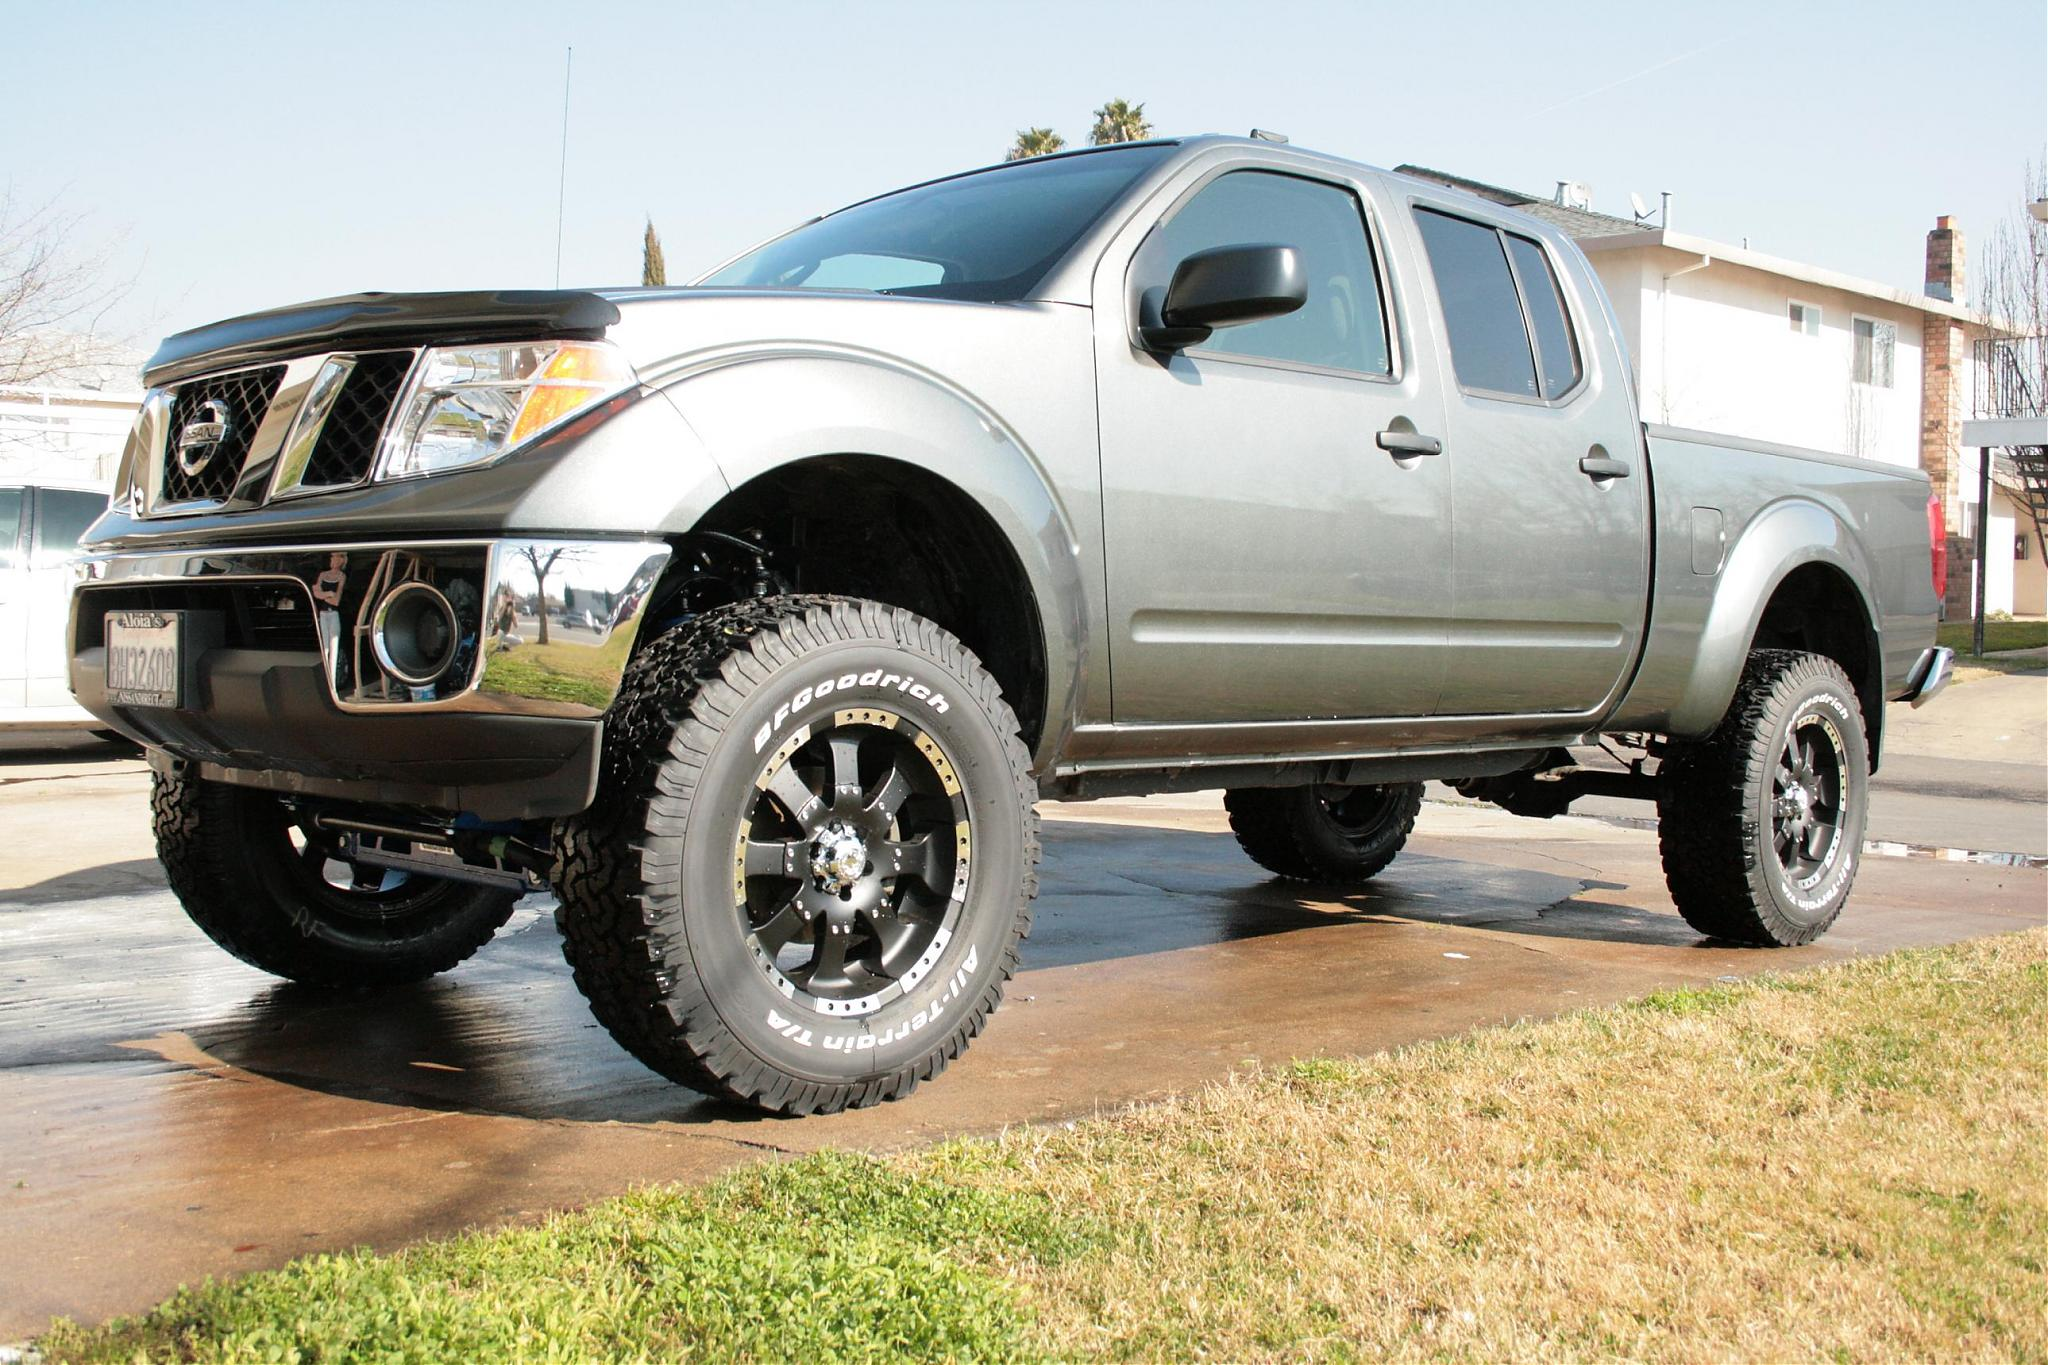 Pics Of A Nissan Patrol Lifted 6 Inches